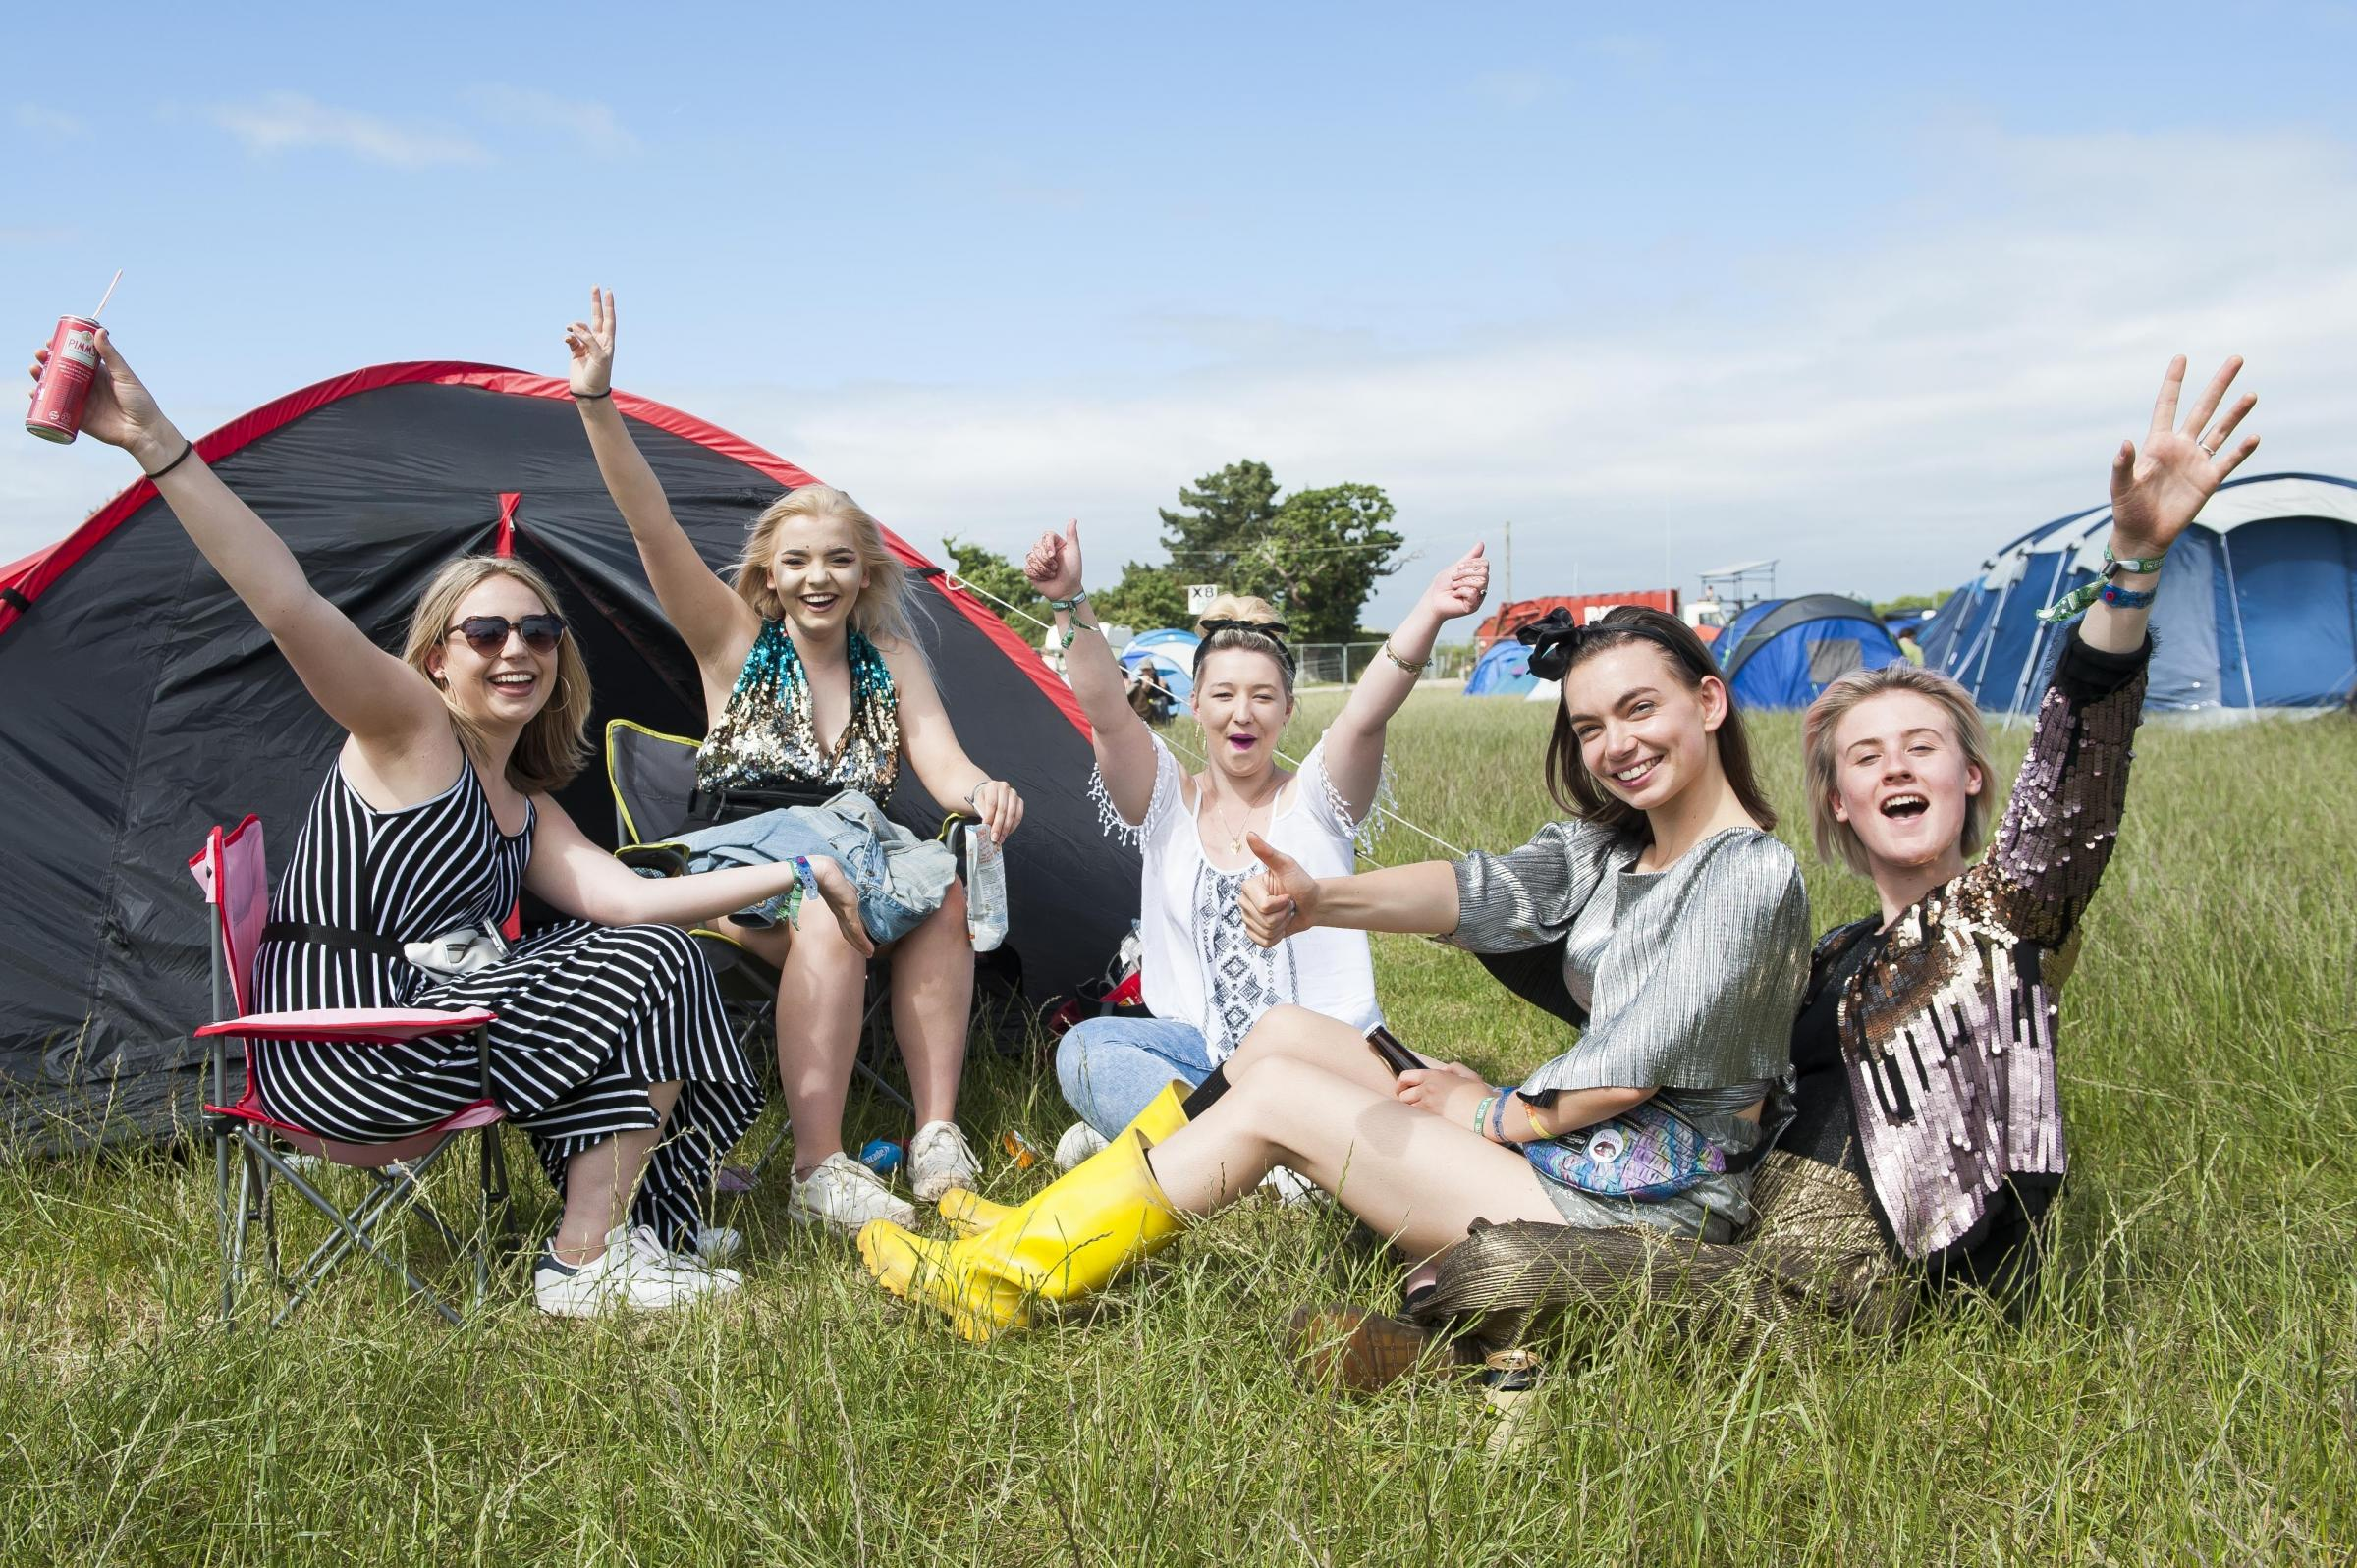 Festival-goers at Isle of Wight Festival 2017. David Jensen/PA Archive/PA Images